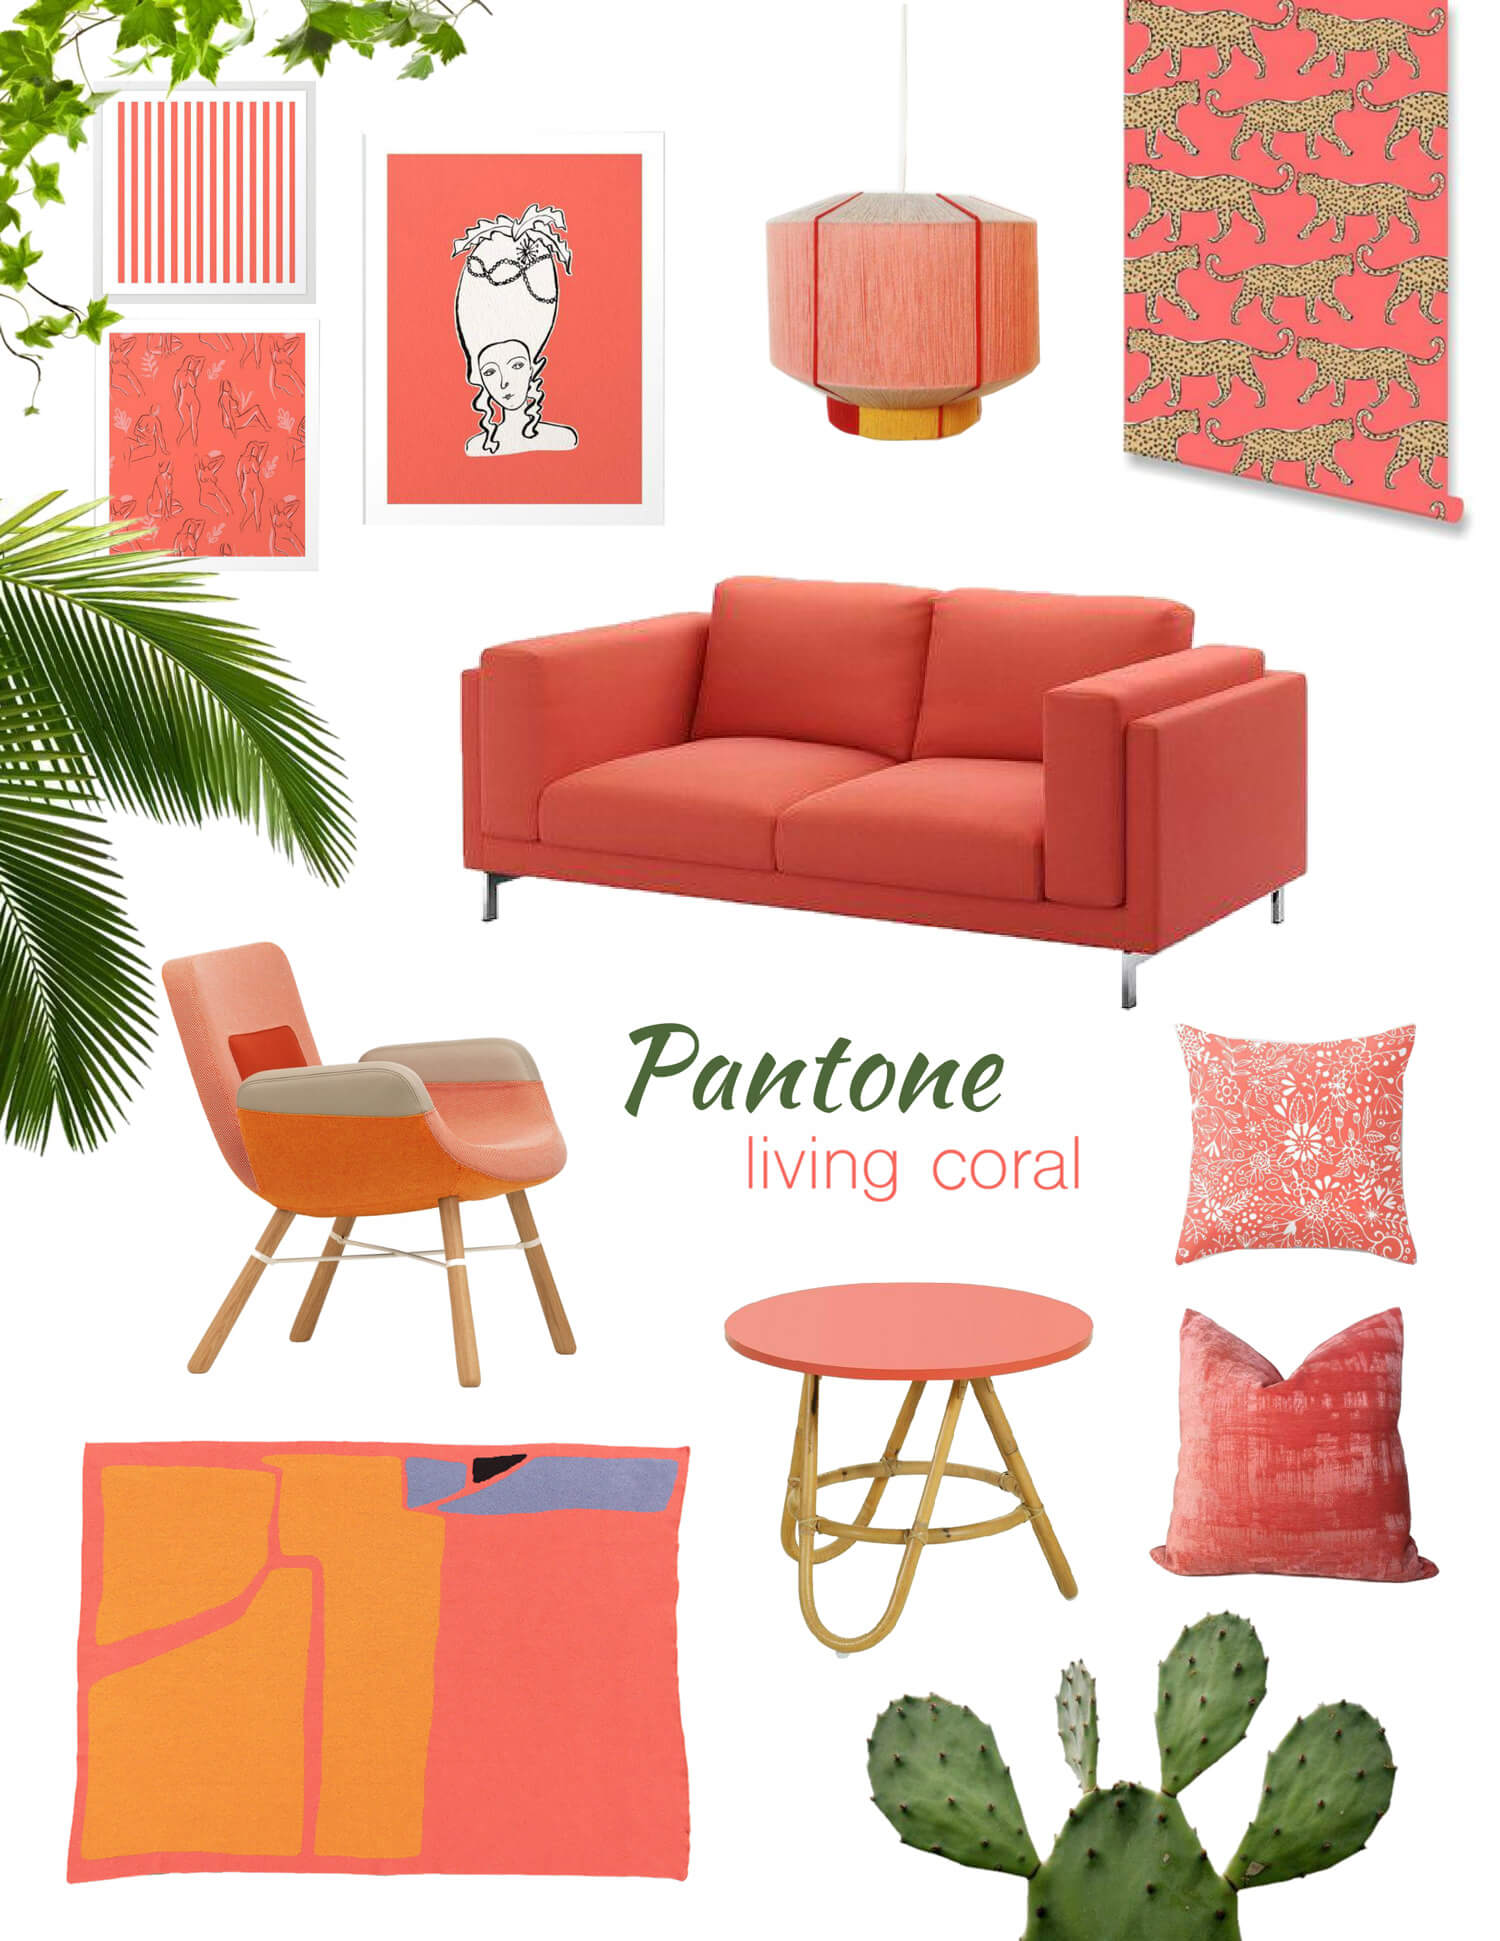 top furniture and Home decor products in Pantone 2019 Living Coral